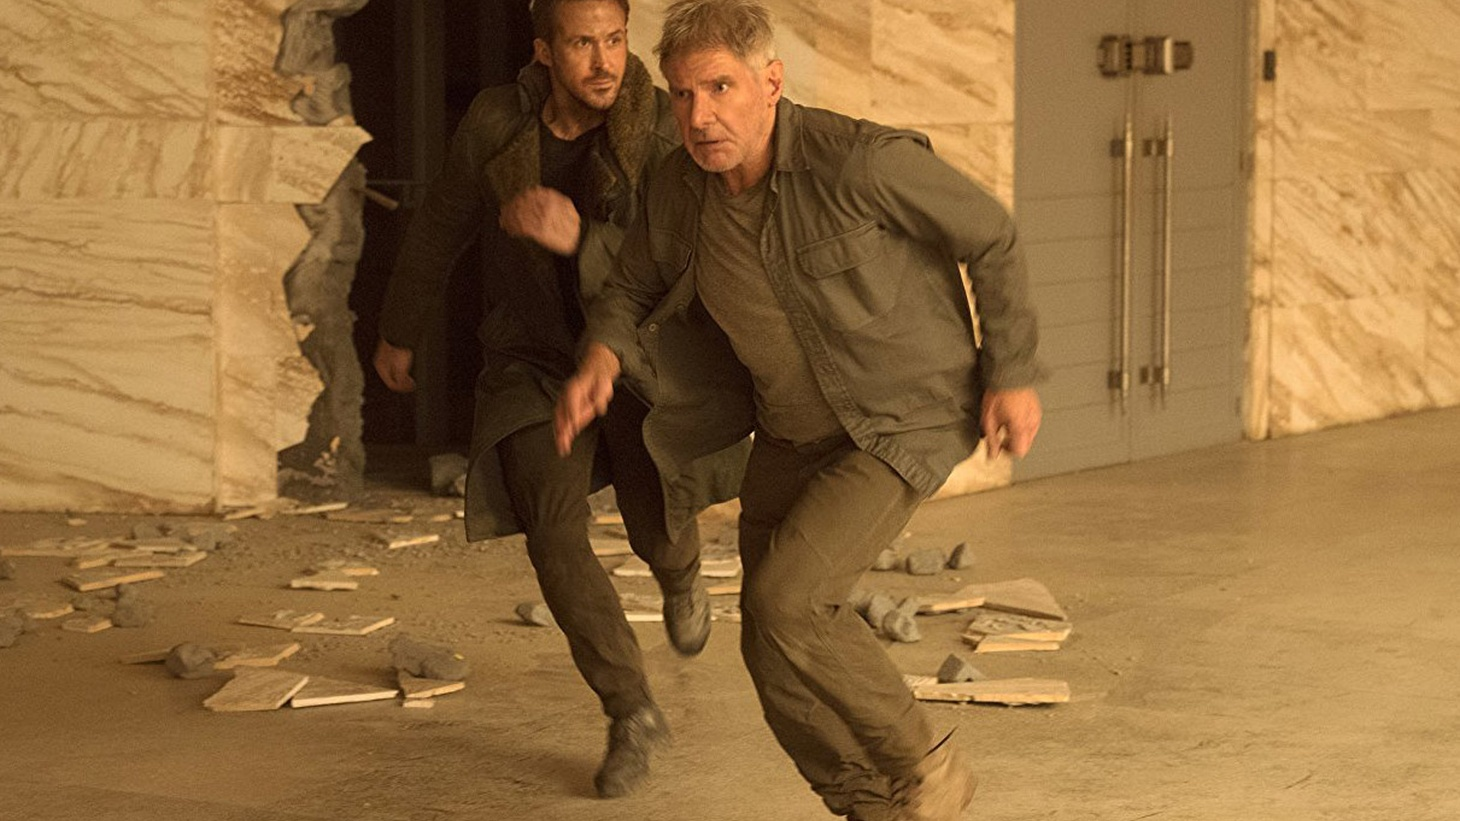 The big question in Blade Runner 2049 continues to be the one posed by Ridley Scott's 1982 sci-fi masterpiece. Who is human, made of flesh and blood, and who is a replicant, built in a factory but able to pass for human in most respects?